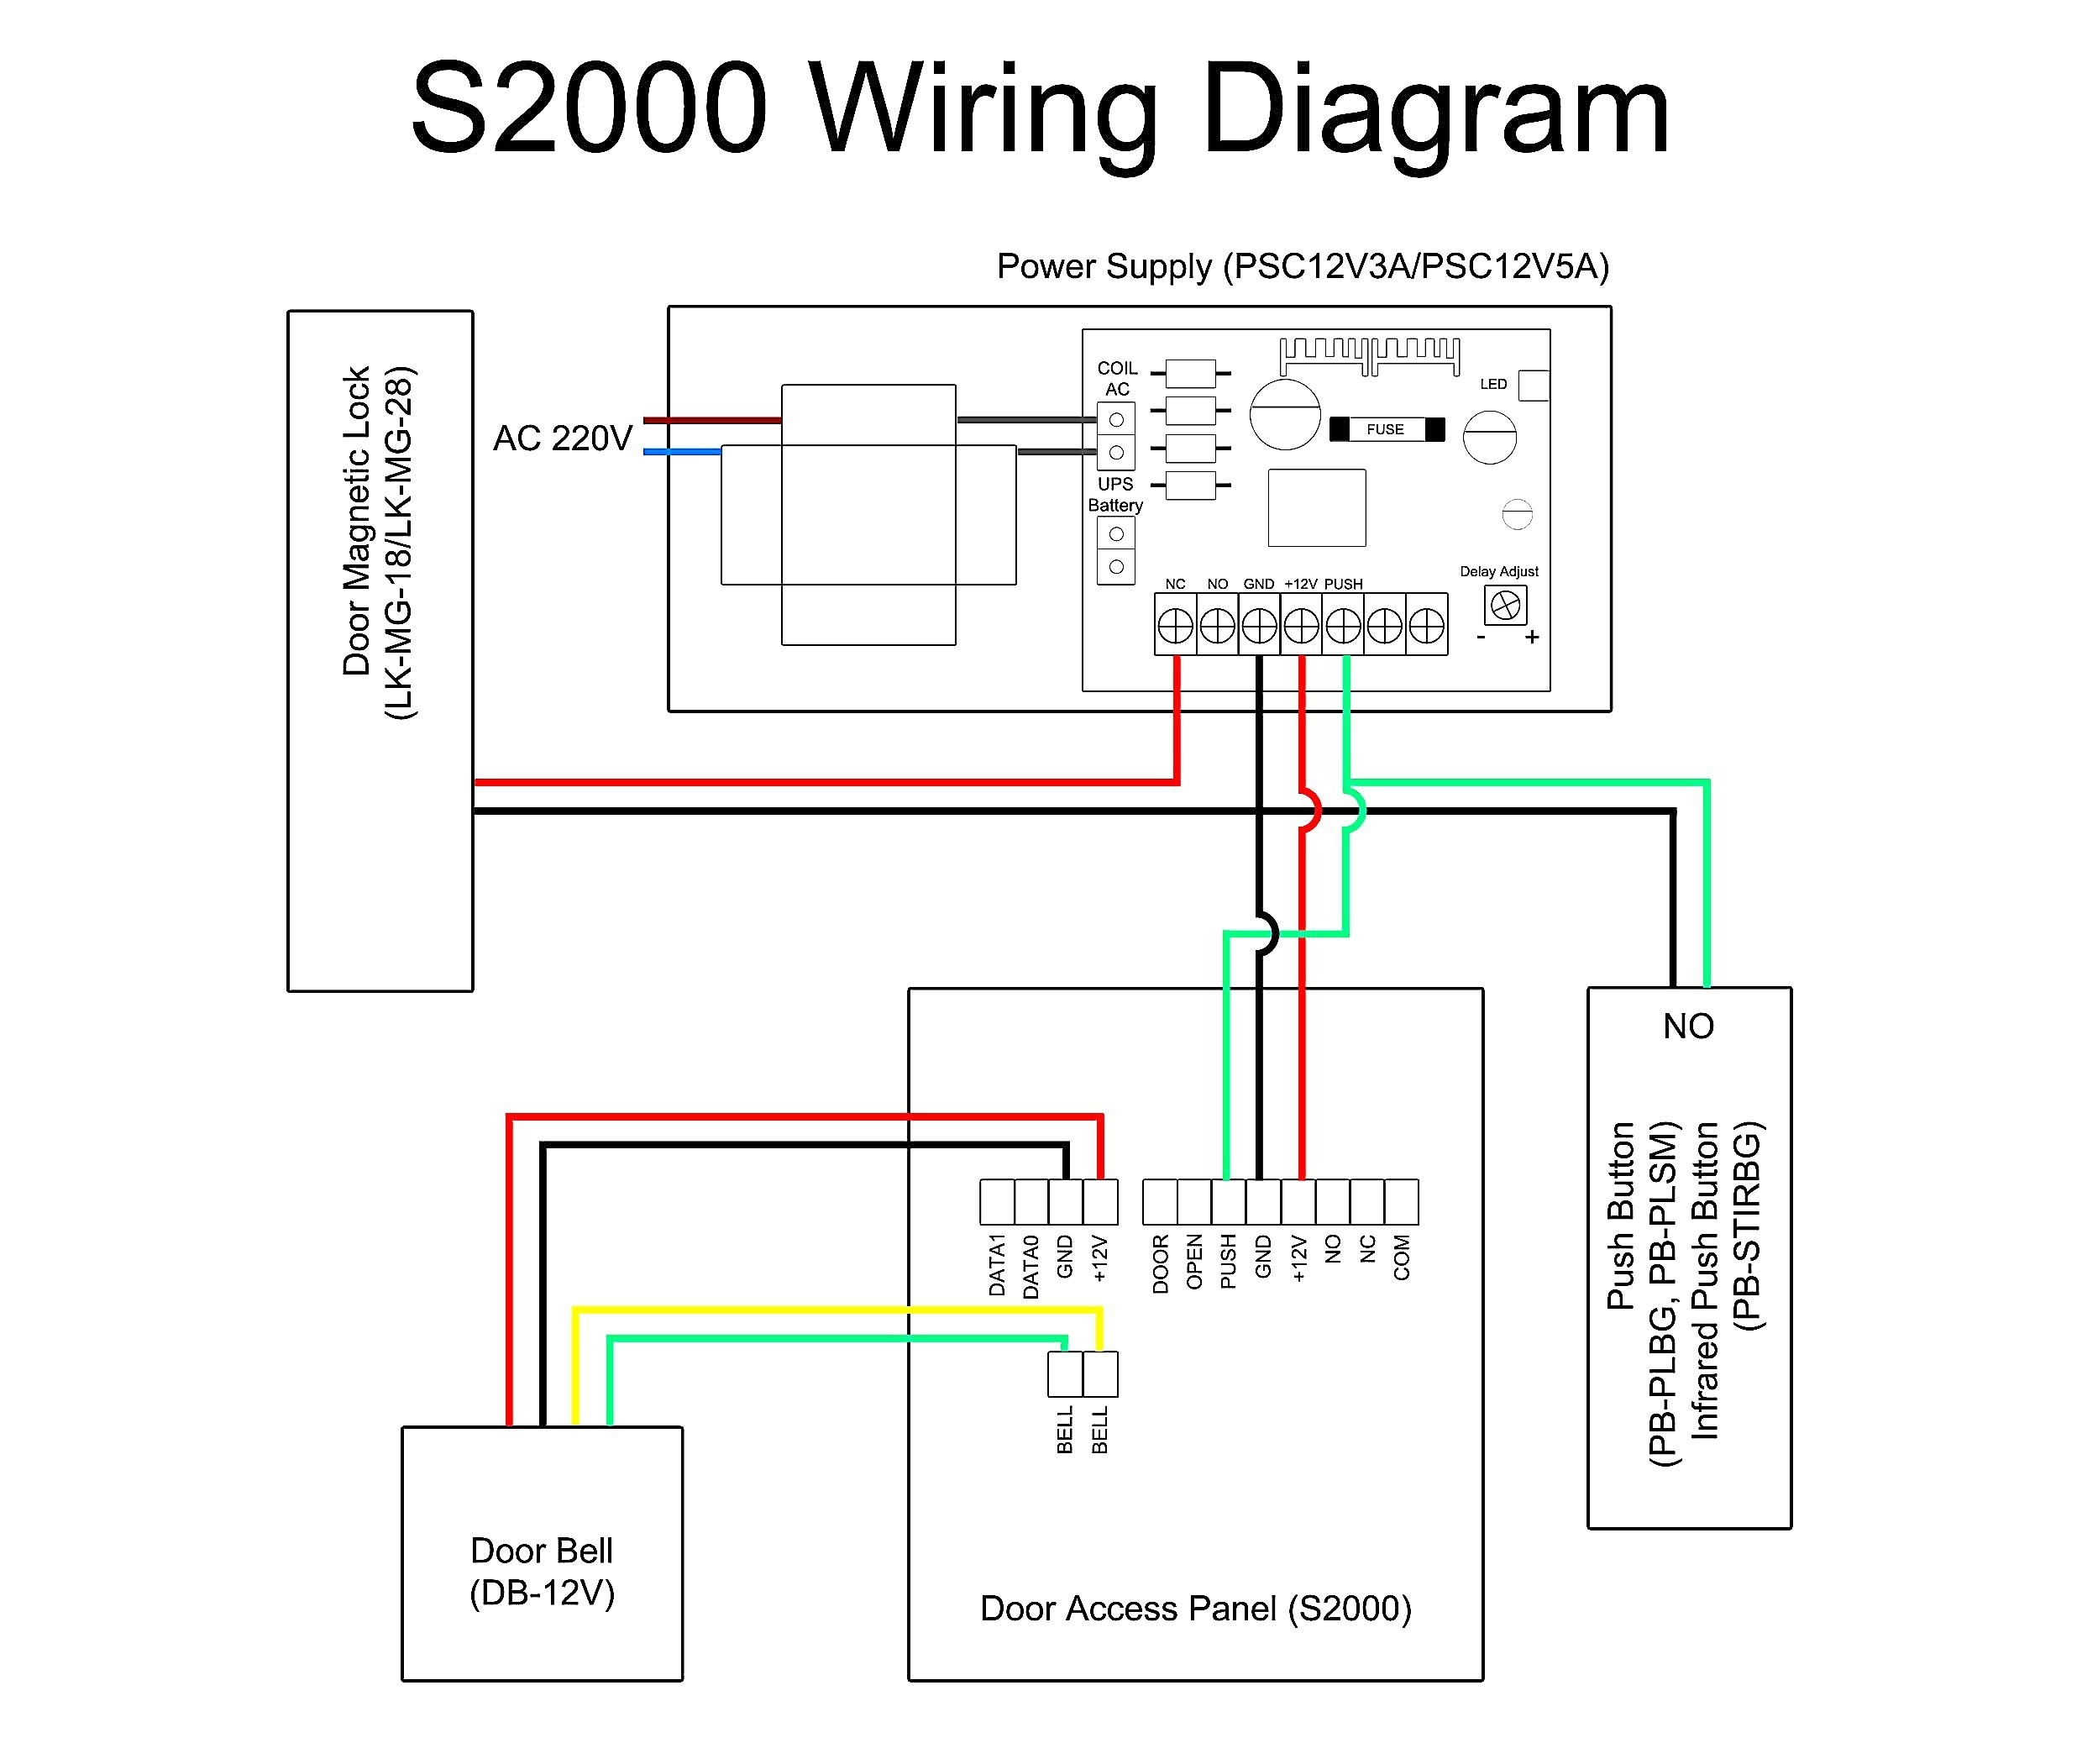 47546 security tv camera wiring schematic Download-Weatherproof Security Camera Wiring Diagram Download Fresh Security Camera Wire Color Diagram Wiring Iteris 1-s